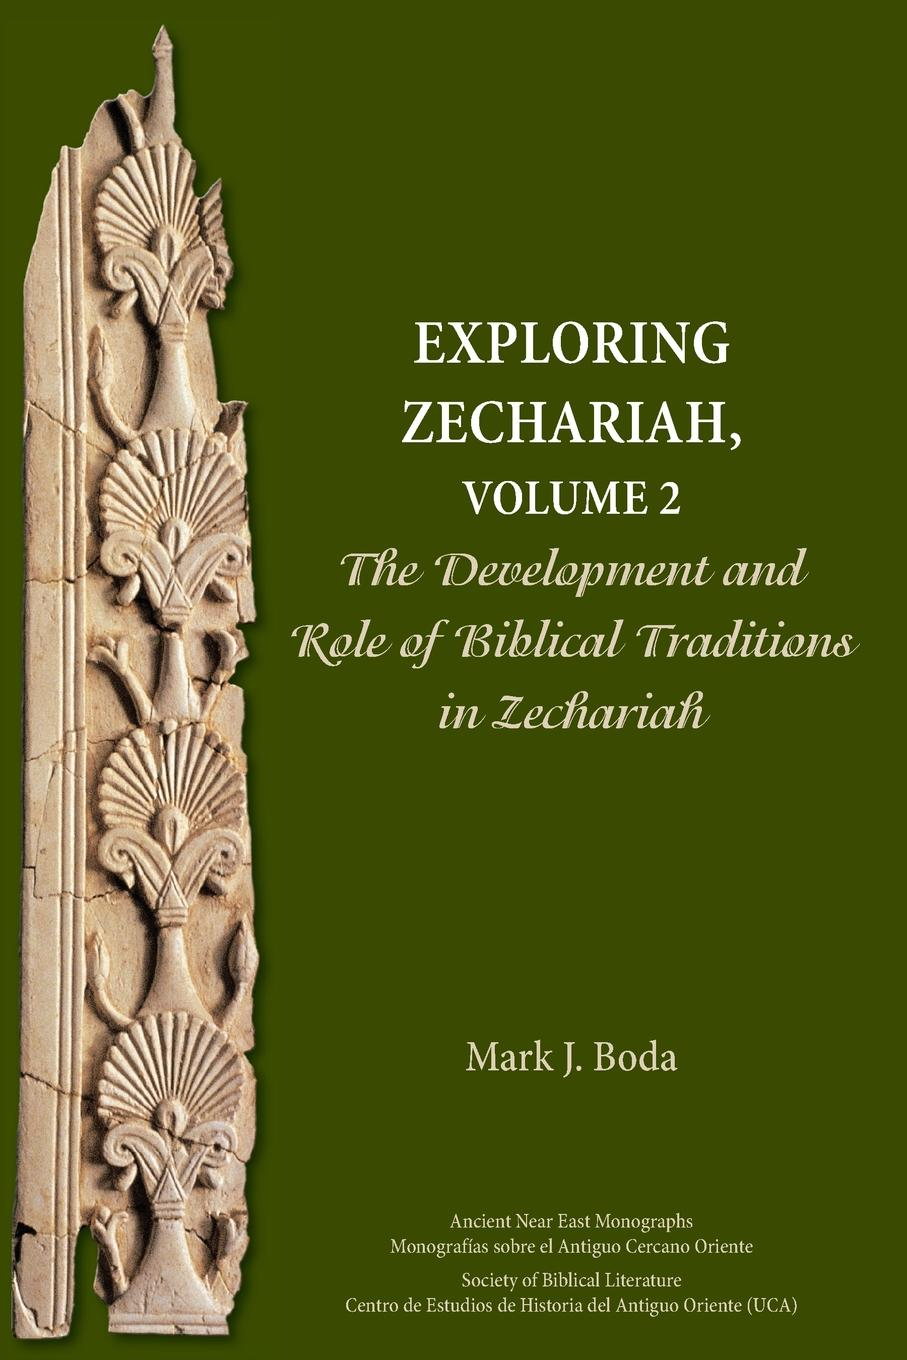 Mark J. Boda Exploring Zechariah, Volume 2. The Development and Role of Biblical Traditions in Zechariah mark j boda exploring zechariah volume 2 the development and role of biblical traditions in zechariah